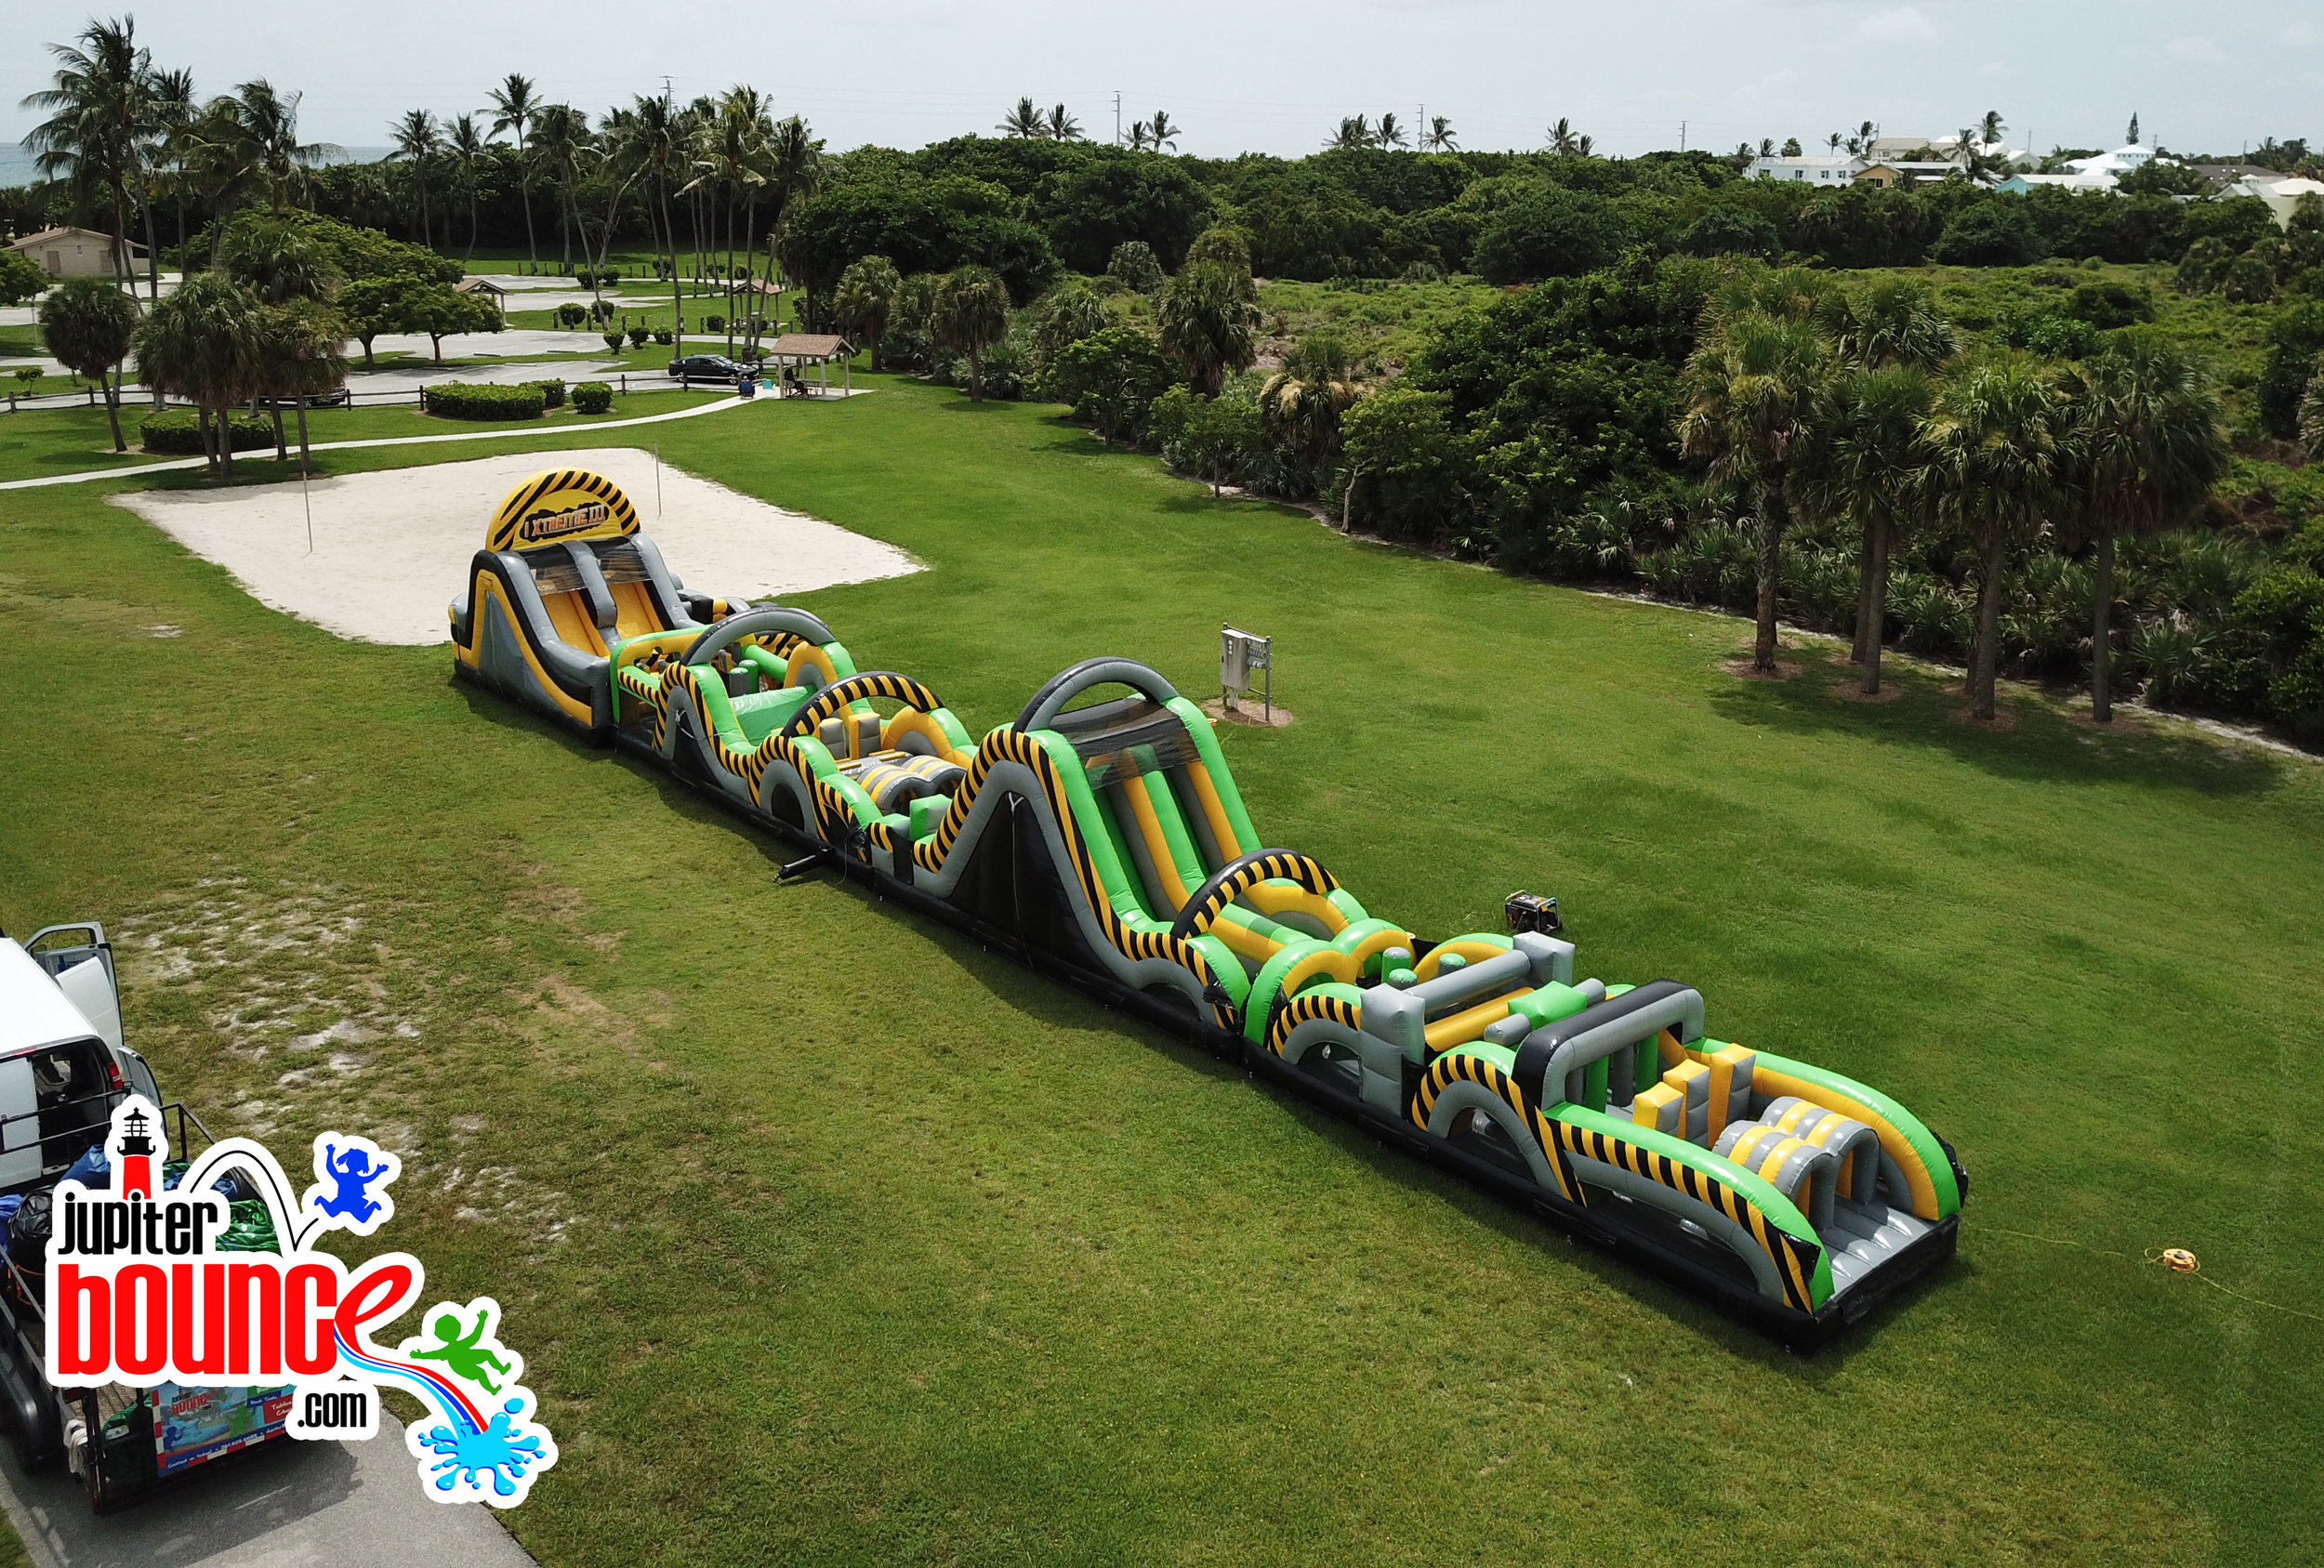 hugeobstacle-140ftobstacle-jupiterbounce-adultparty-westpalmbeach-southfloridapartyrental-33410-palmbeachgardens-wellingtonwaterslide-hobesound.jpg